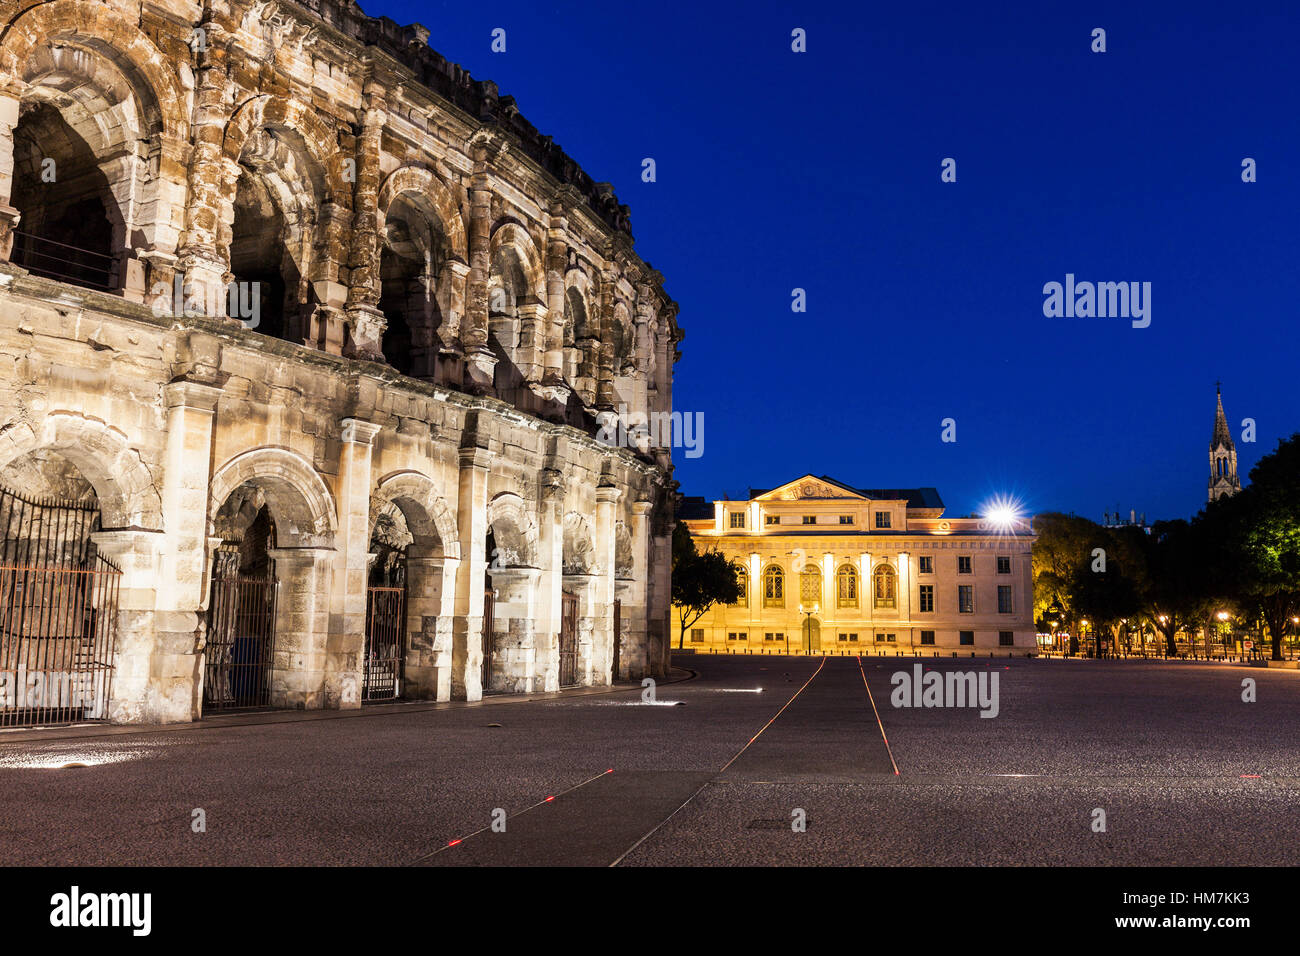 France, Occitanie, Nimes, Arena of Nimes at dusk - Stock Image